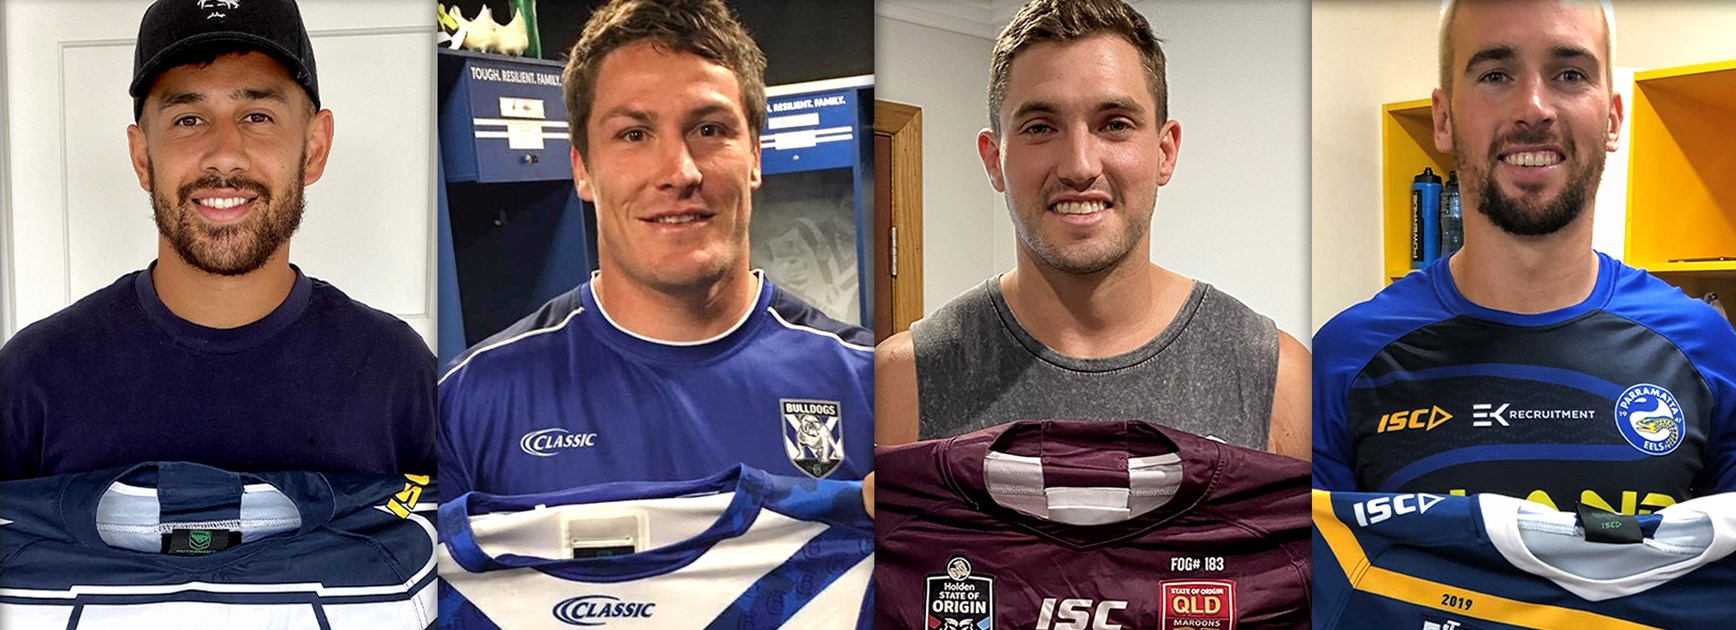 NRL stars auction jerseys to support Bushfire appeal